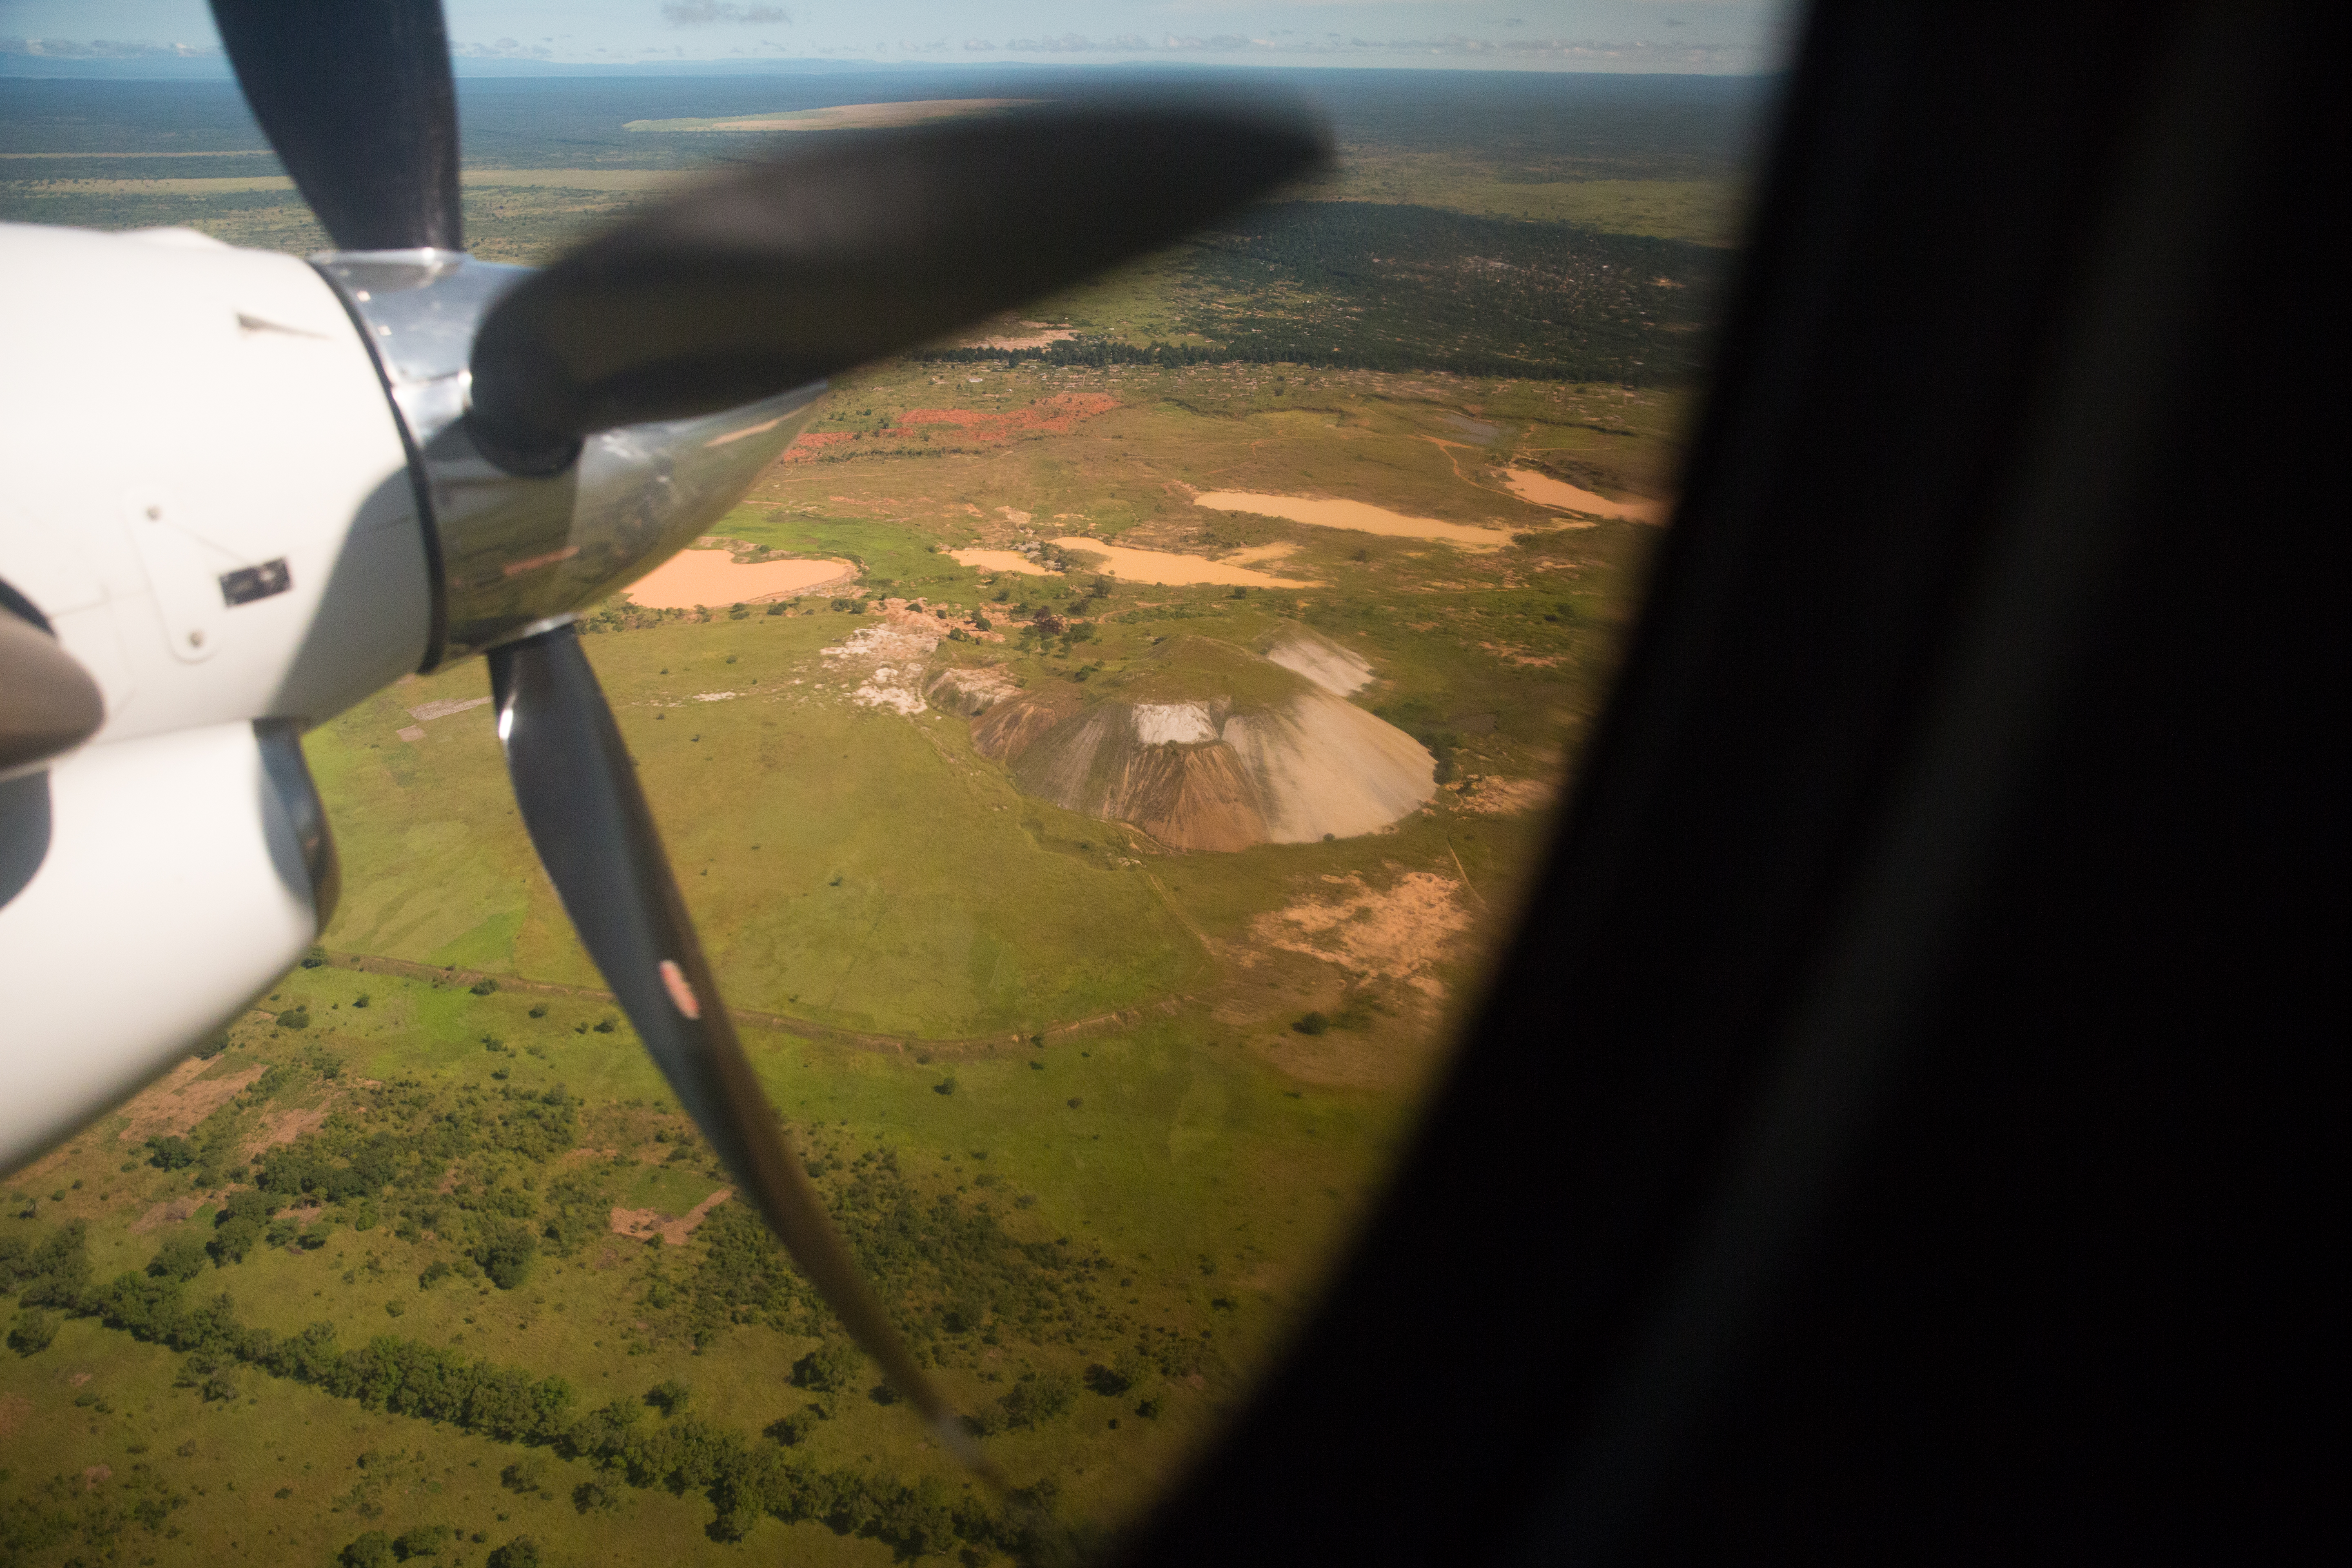 A large mine seen from a propellor plane.